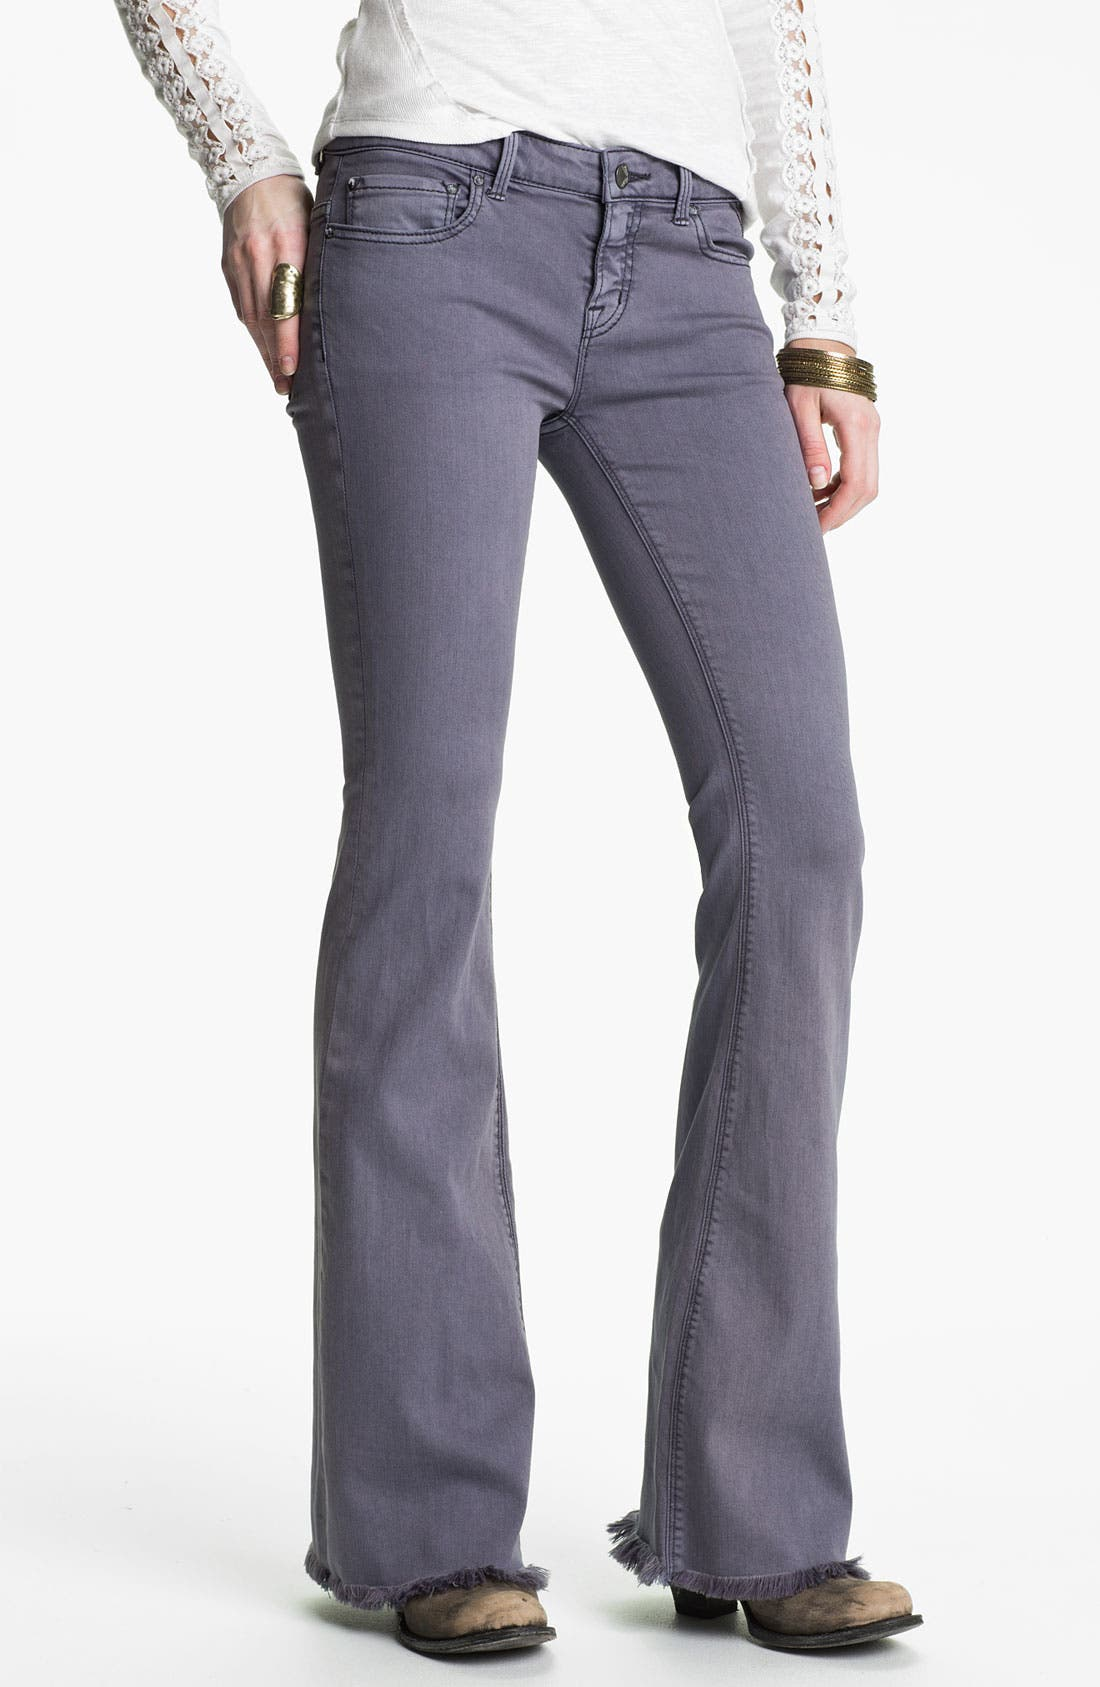 Alternate Image 1 Selected - Free People 'Millennium' Colored Denim Bootcut Jeans (Violet)